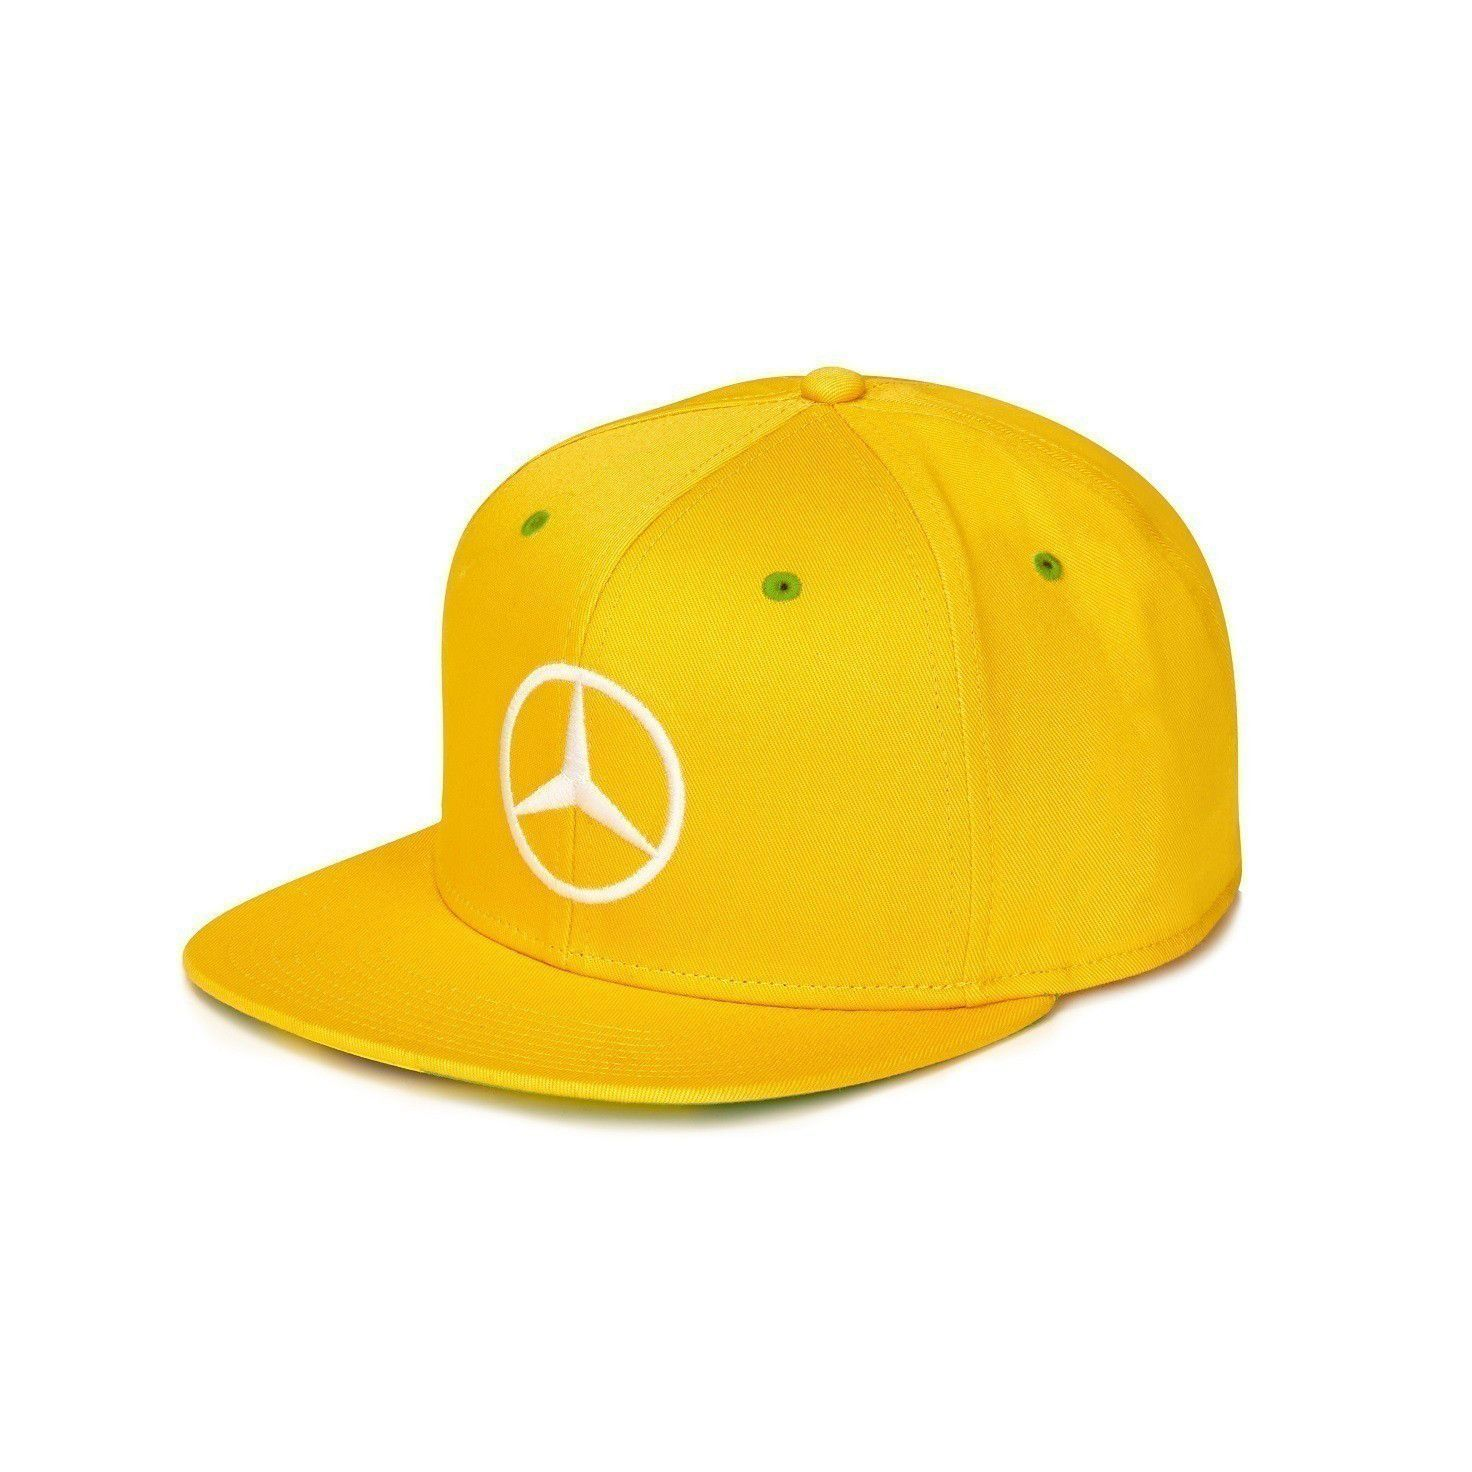 Mercedes AMG Petronas Lewis Hamilton Brazil Special Edition Flat Brim Cap  The 2015 Lewis Hamilton Brazil GP Cap is now available for purchase! 0e3baf72e93